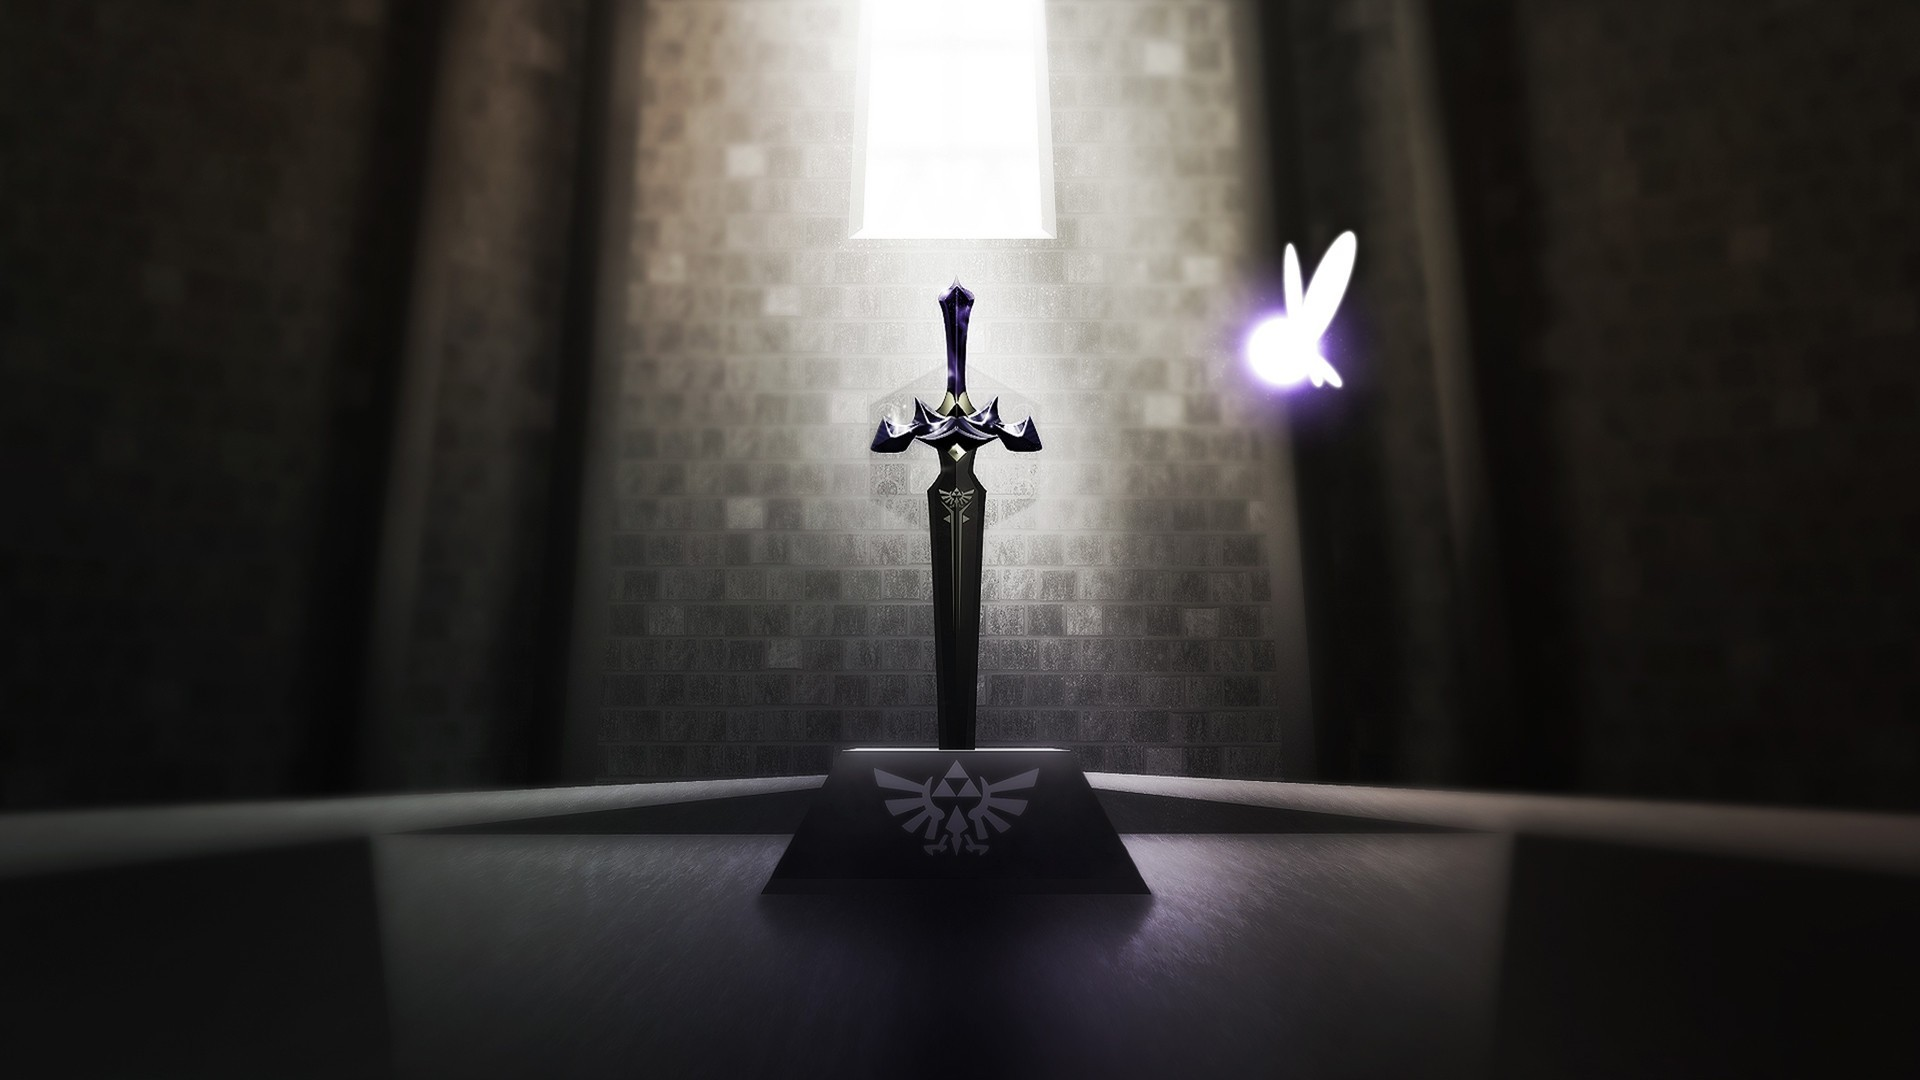 1920x1080 #The Legend of Zelda, #Master Sword wallpaper